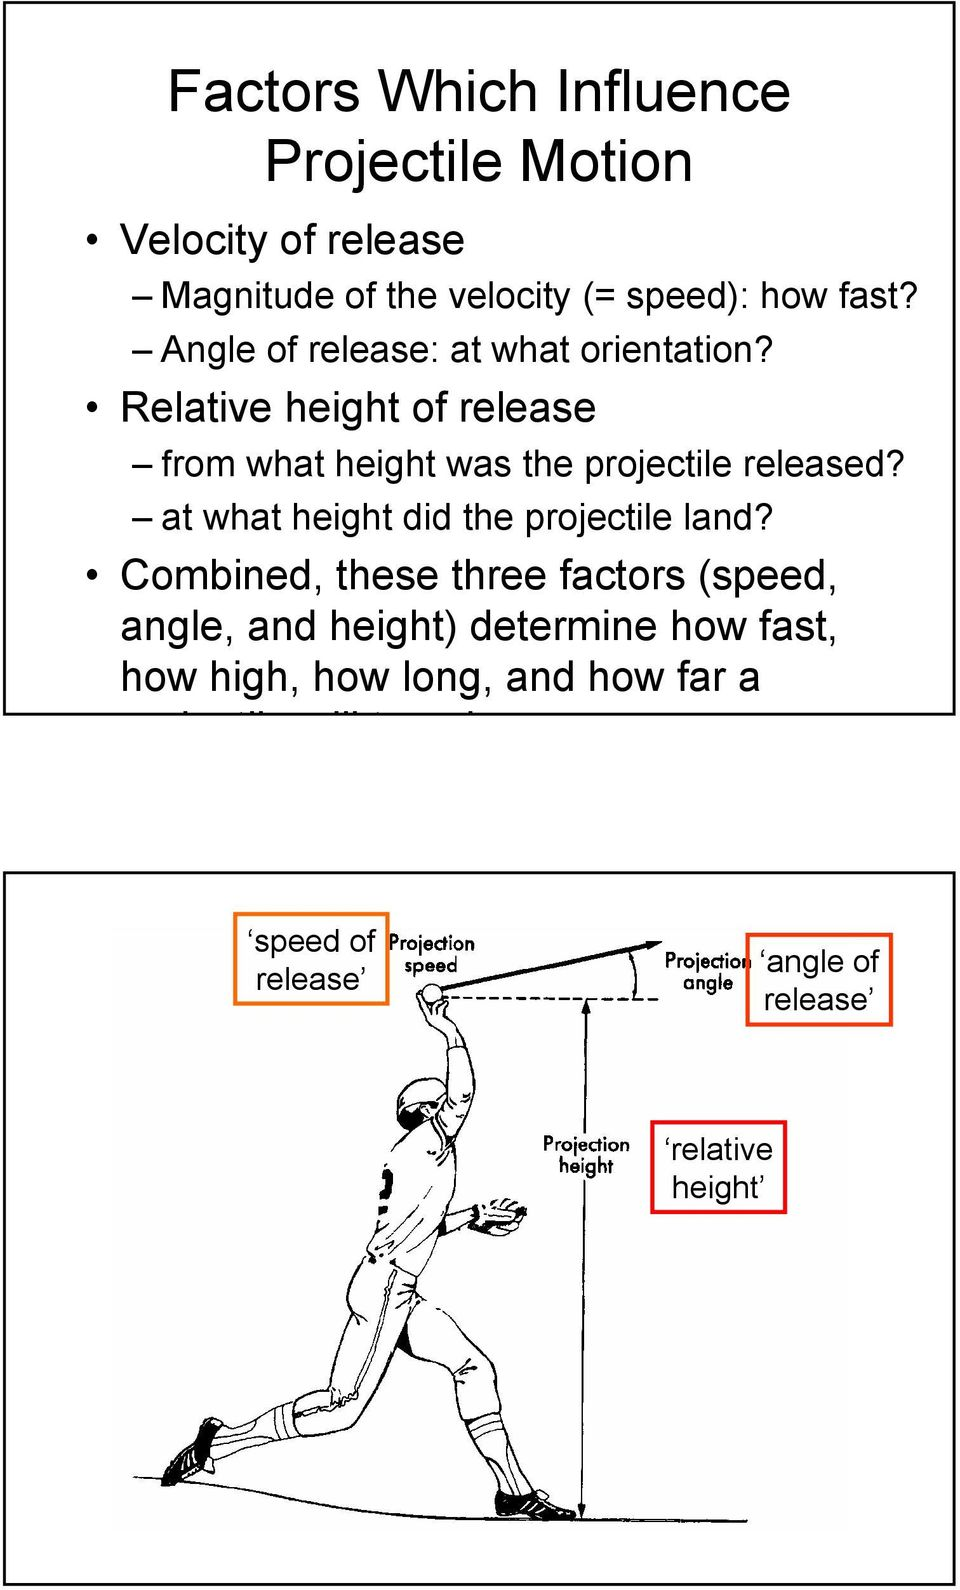 Relative height of release from what height was the projectile released?